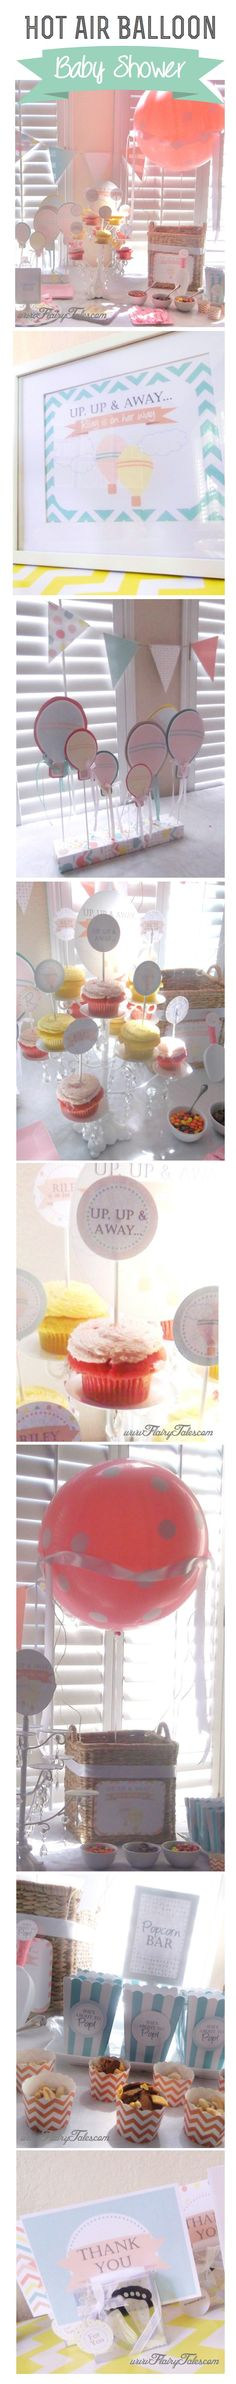 flairi tale, balloon babi, shower idea, hot air balloons, neutral babi